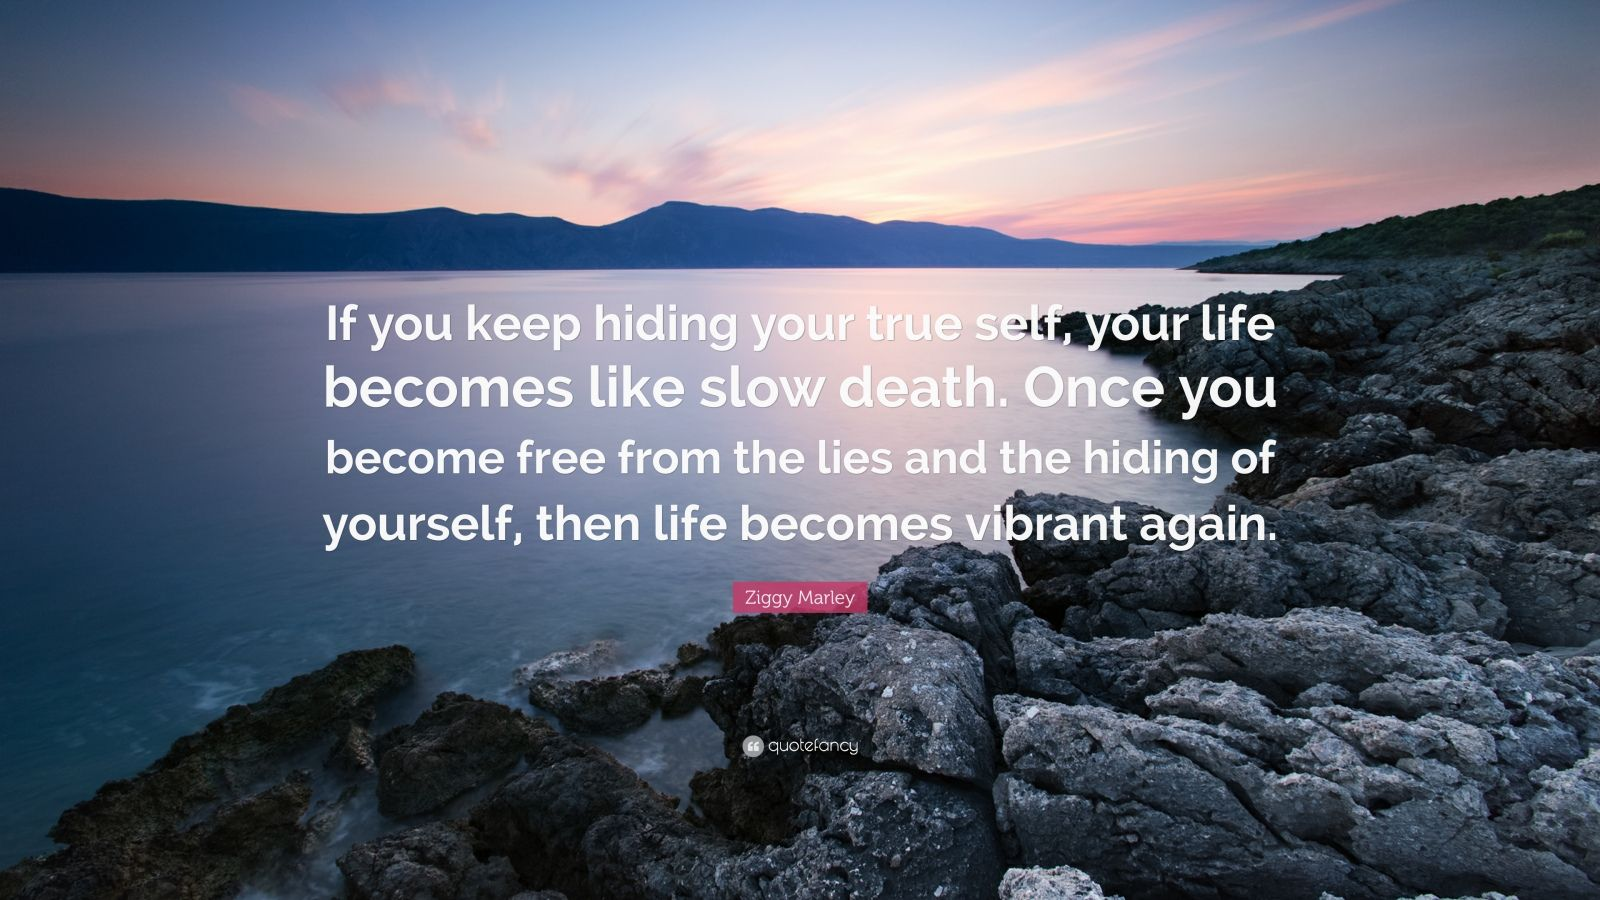 "Ziggy Marley Quote: ""If you keep hiding your true self, your life becomes like slow death. Once you become free from the lies and the hiding of yourself, then life becomes vibrant again."""